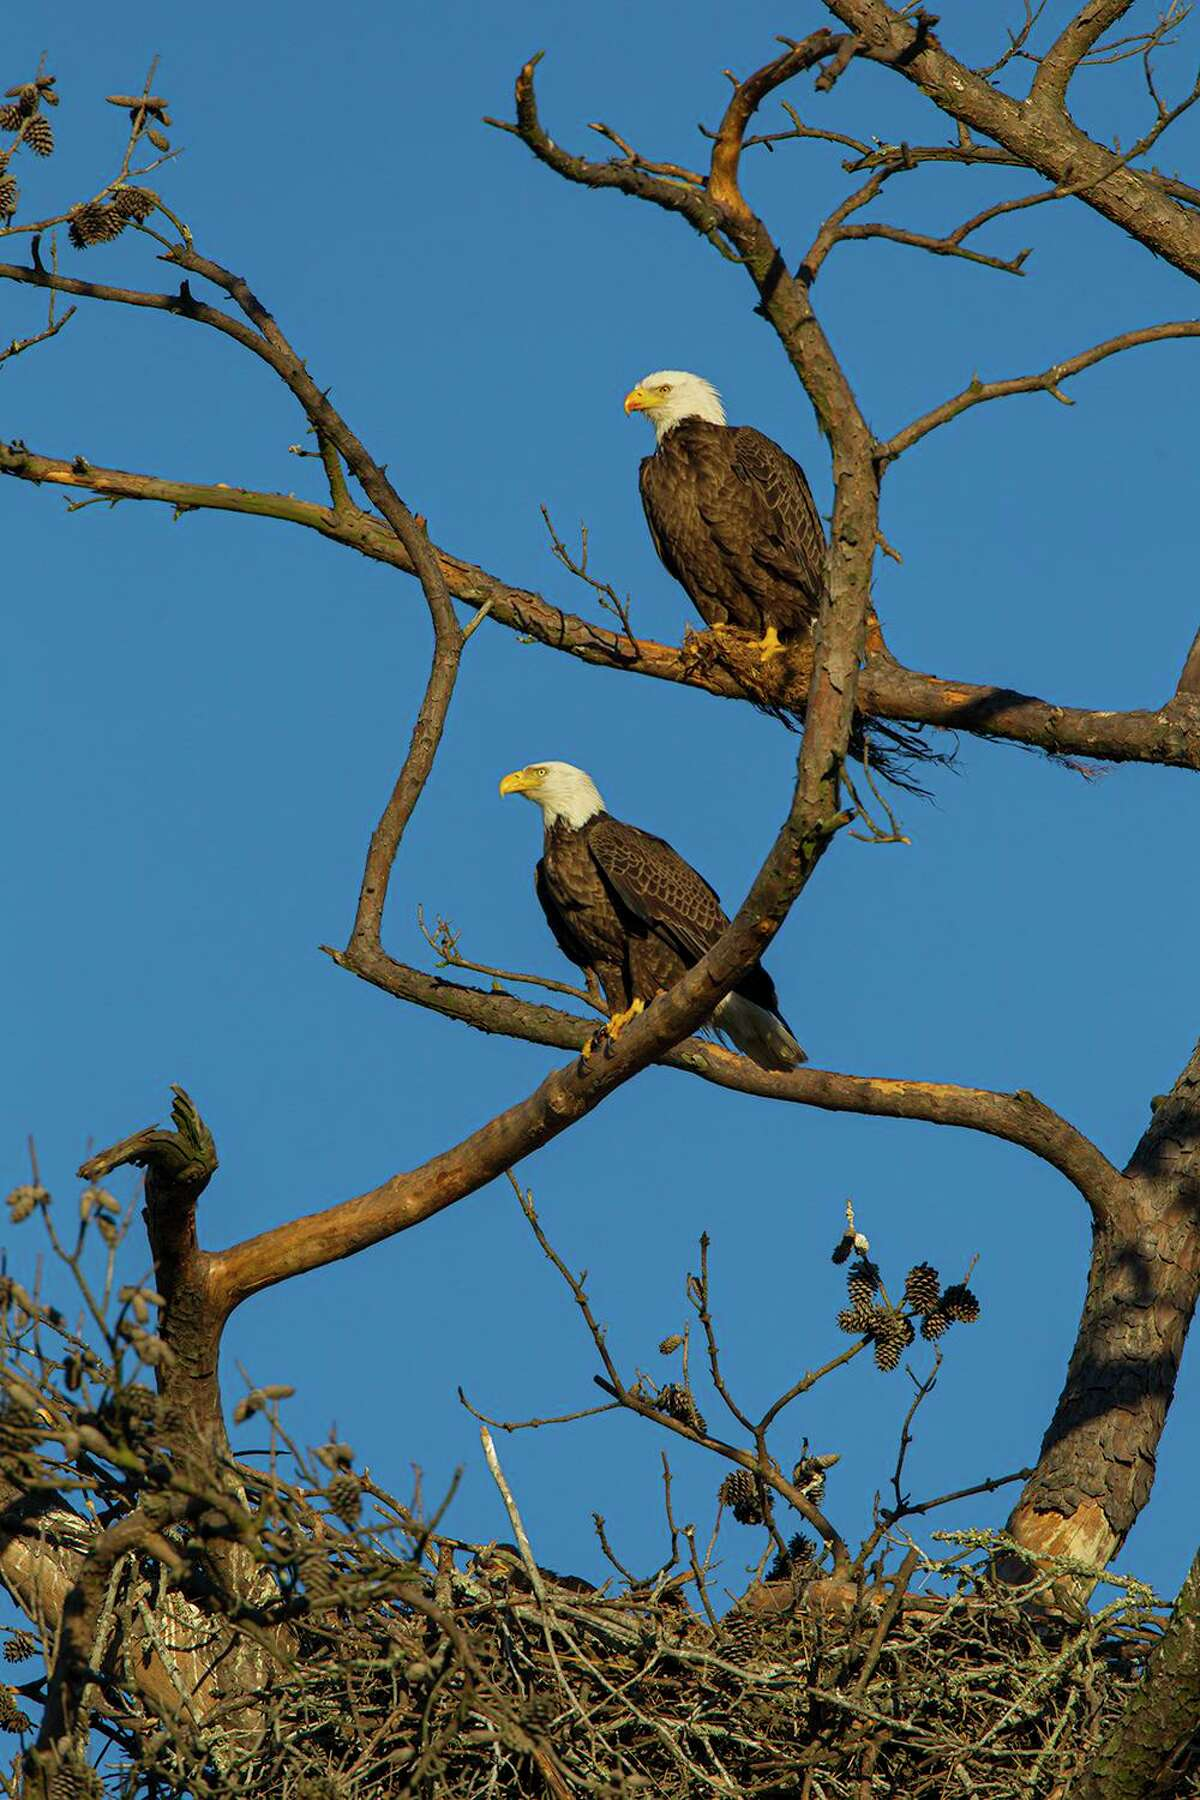 A pair of bald eagles bring tree limbs to the nest site and build a huge, tub-like structure. Photo Credit: Kathy Adams Clark. Restricted use.